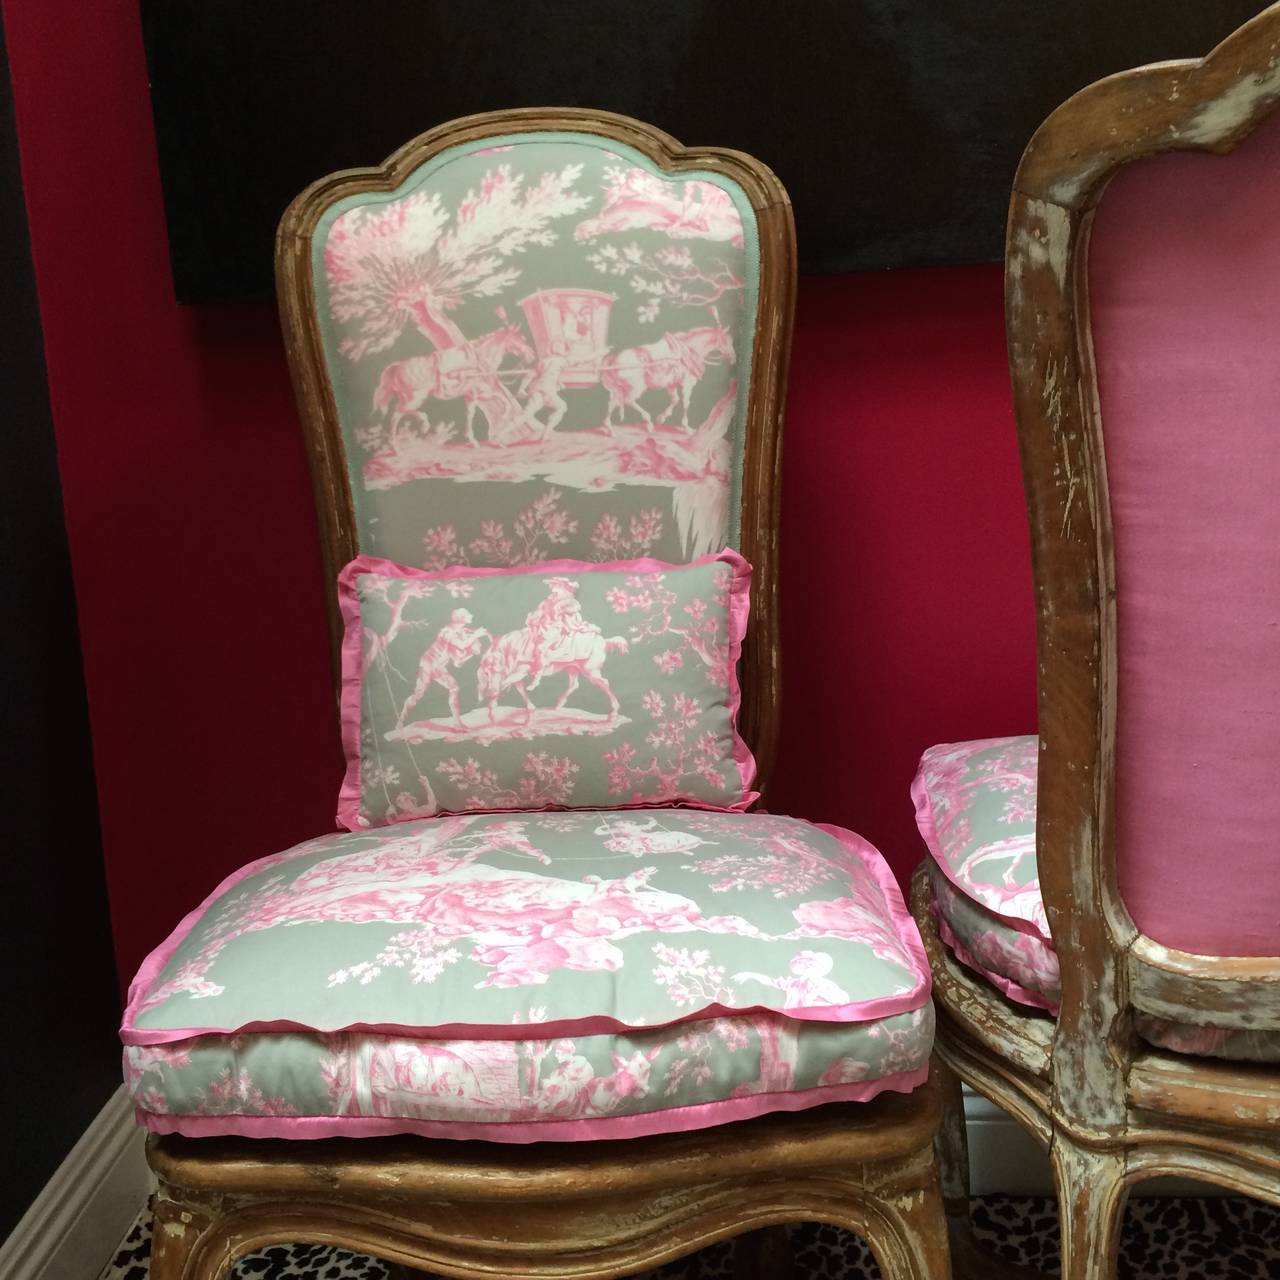 Toile Chair Pair Of French Chairs In Manuel Canovos Toile For Sale At